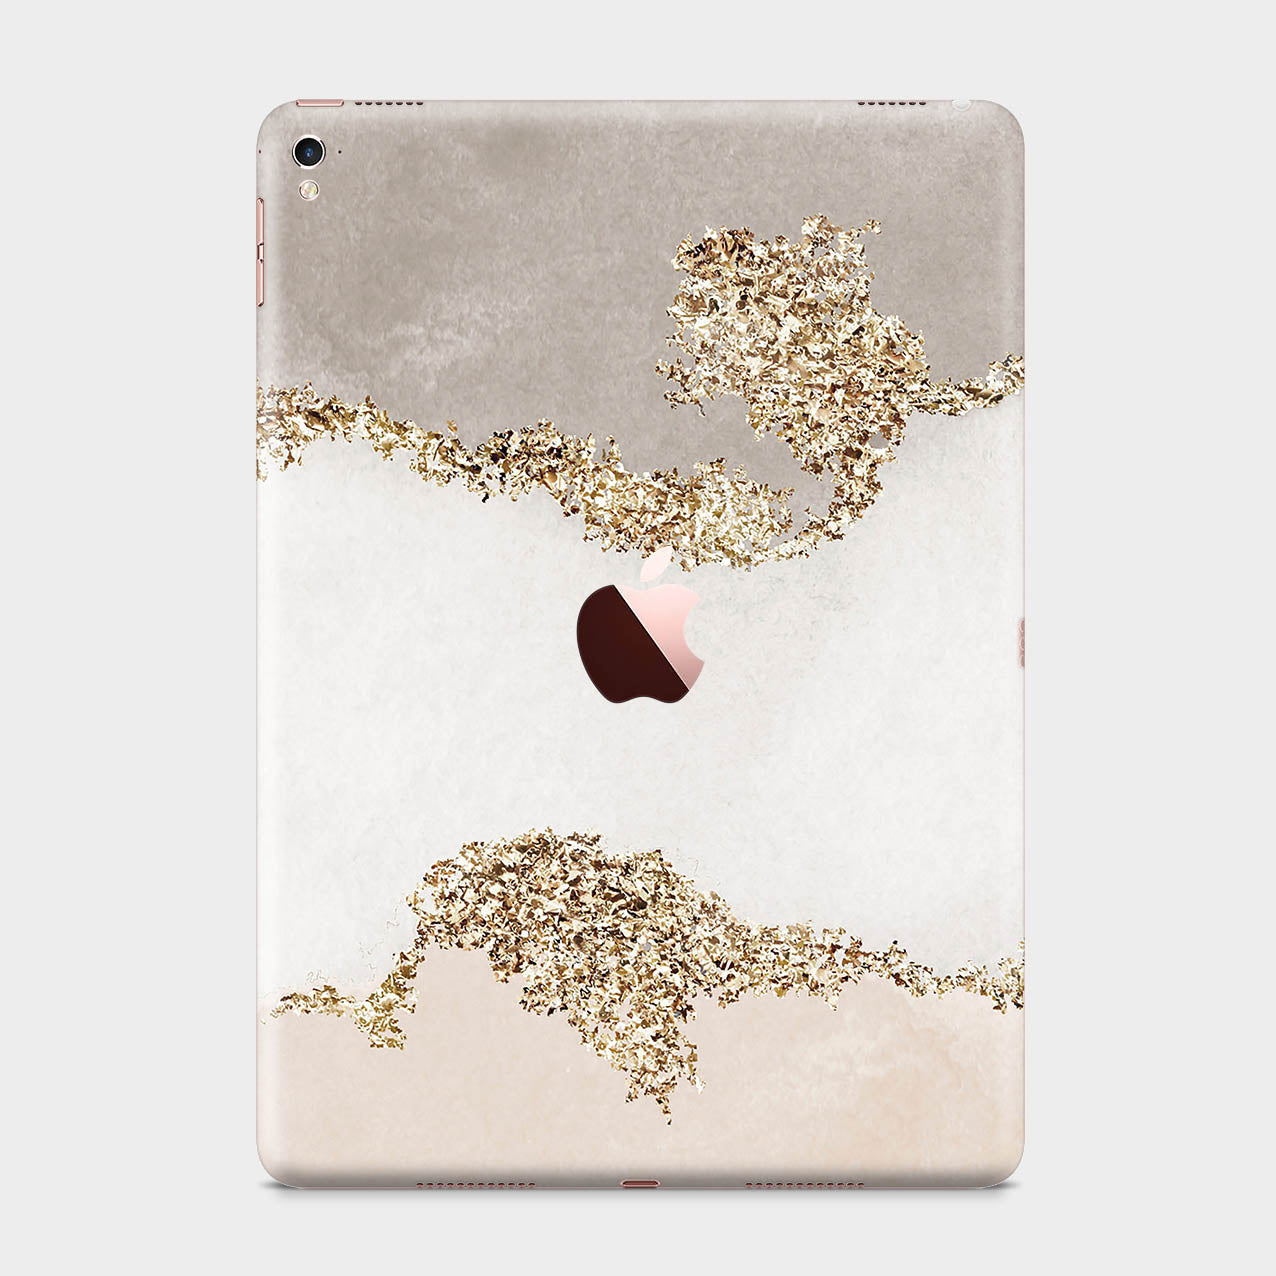 GOLDEN COAST iPad Pro 11 Inch skins | Pigtou